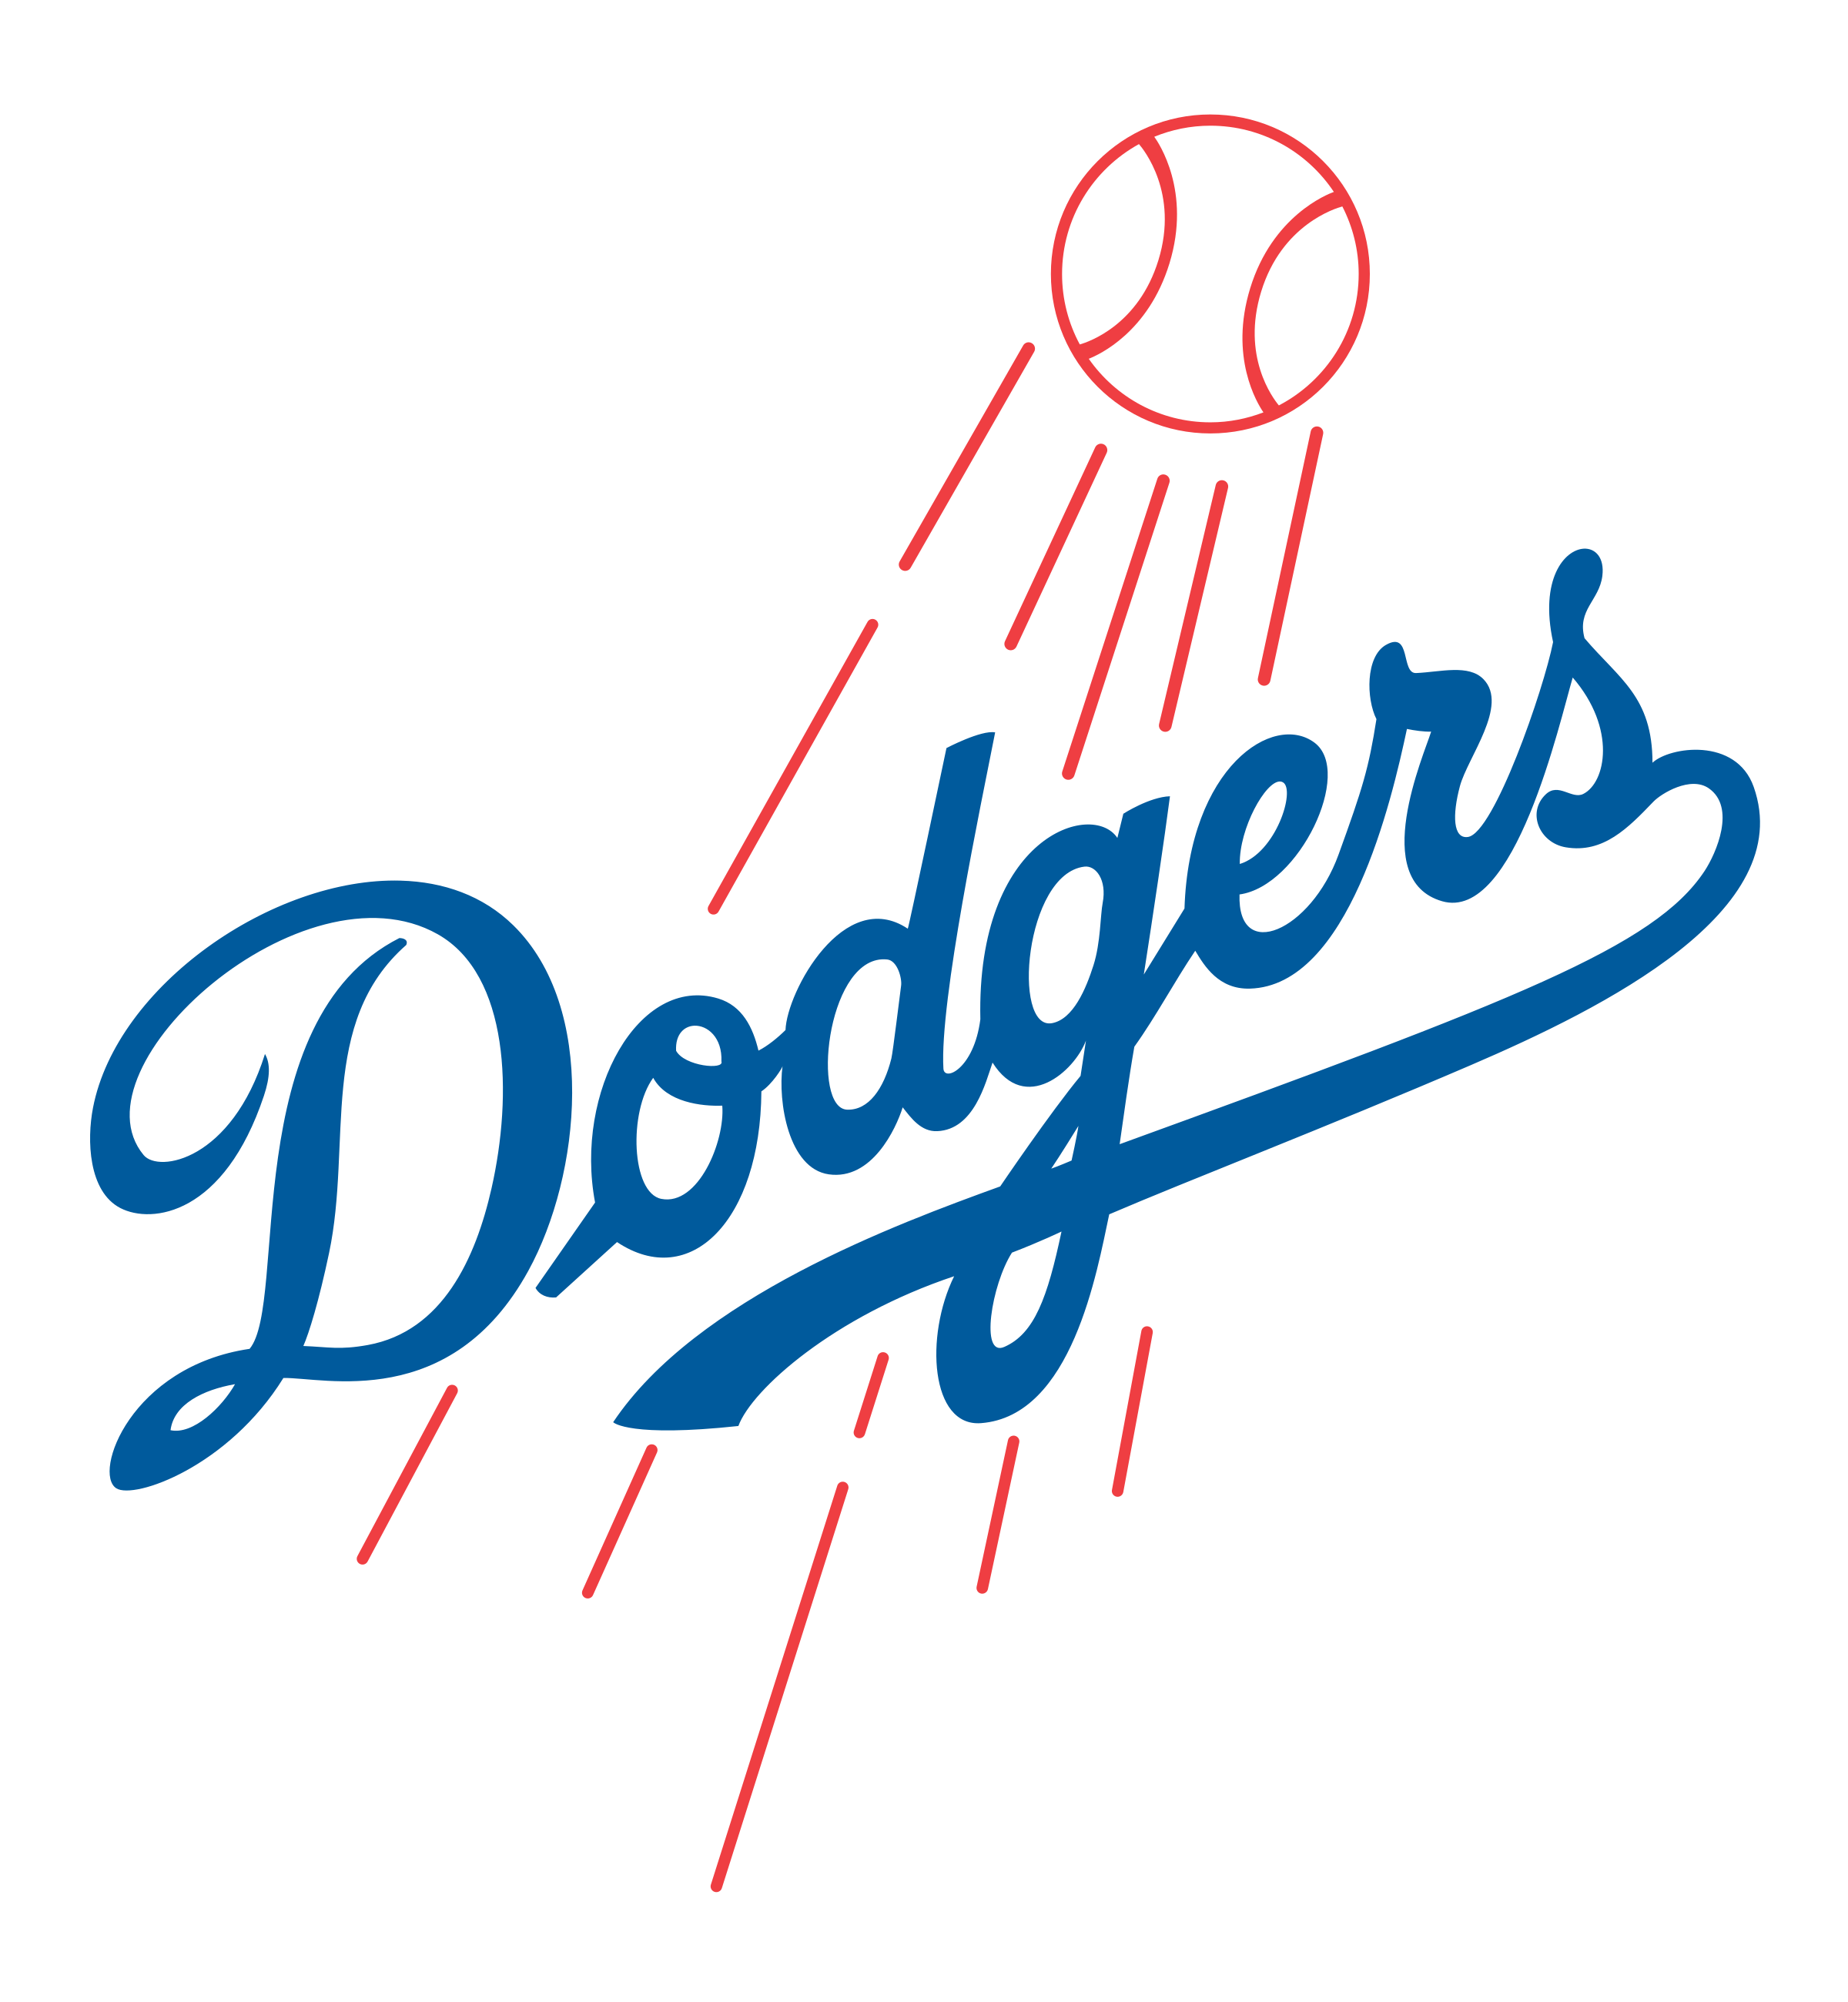 Los angeles logo png. Dodgers vector image library library